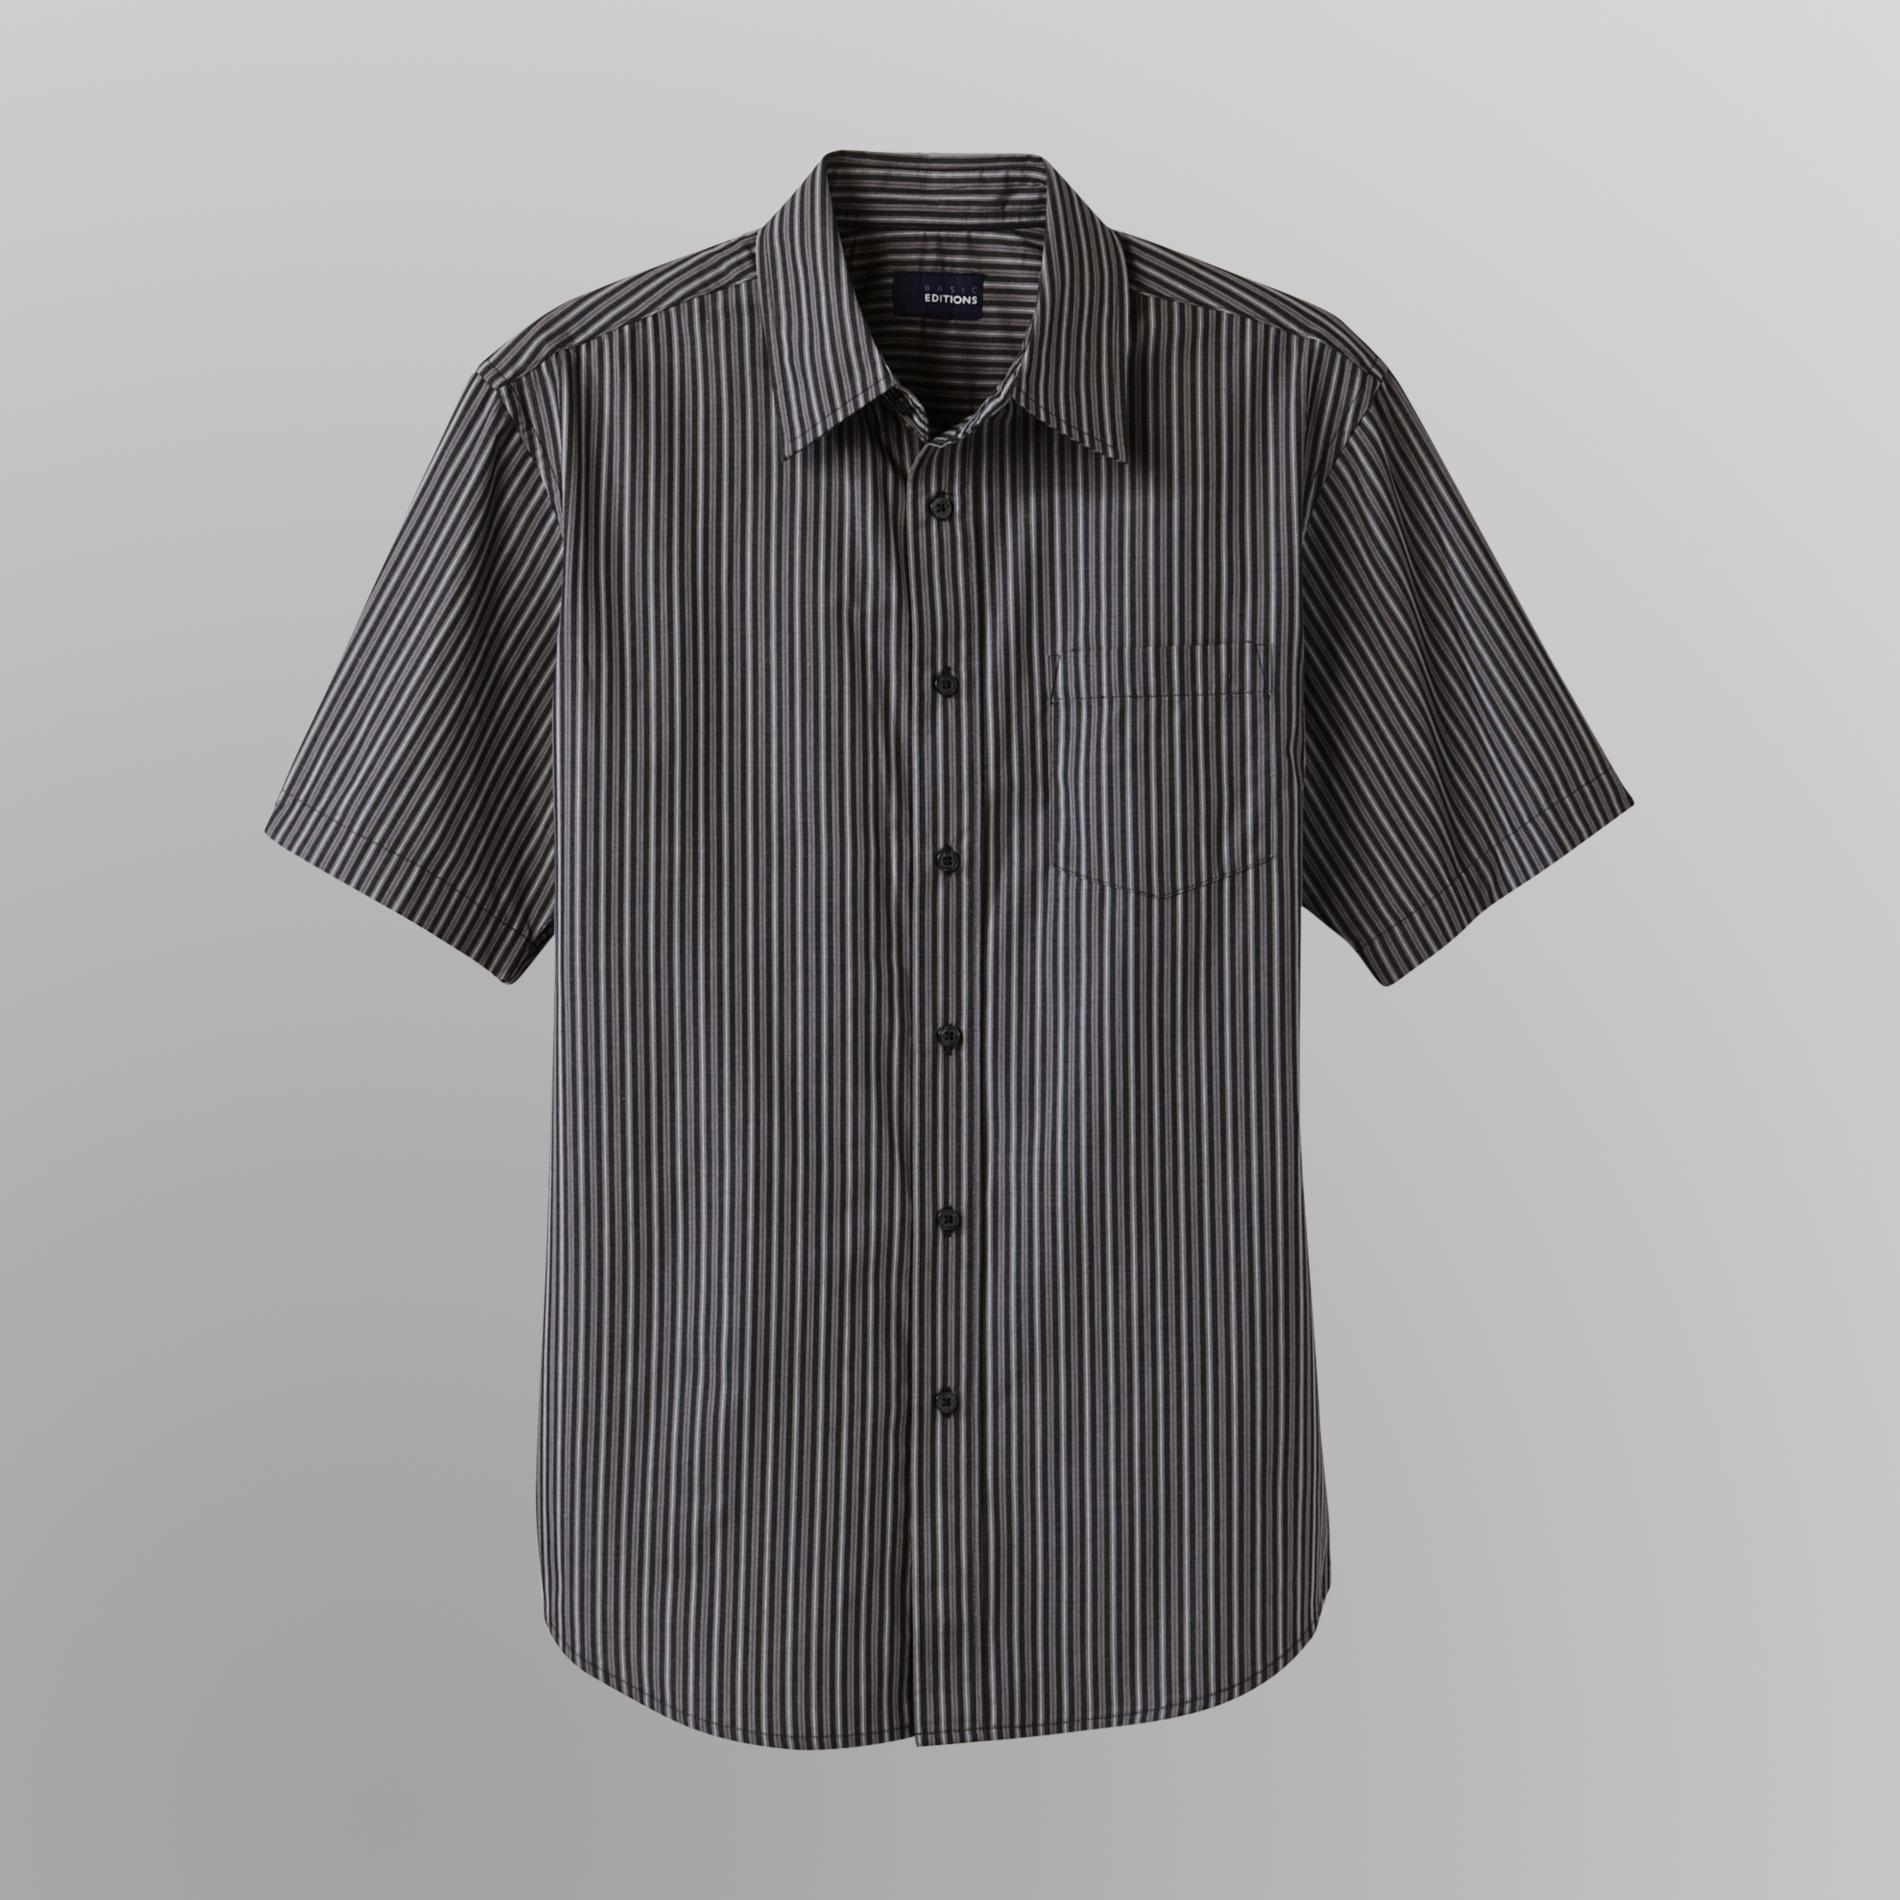 Basic Editions Men's Easy Care Shirt - Striped at Kmart.com